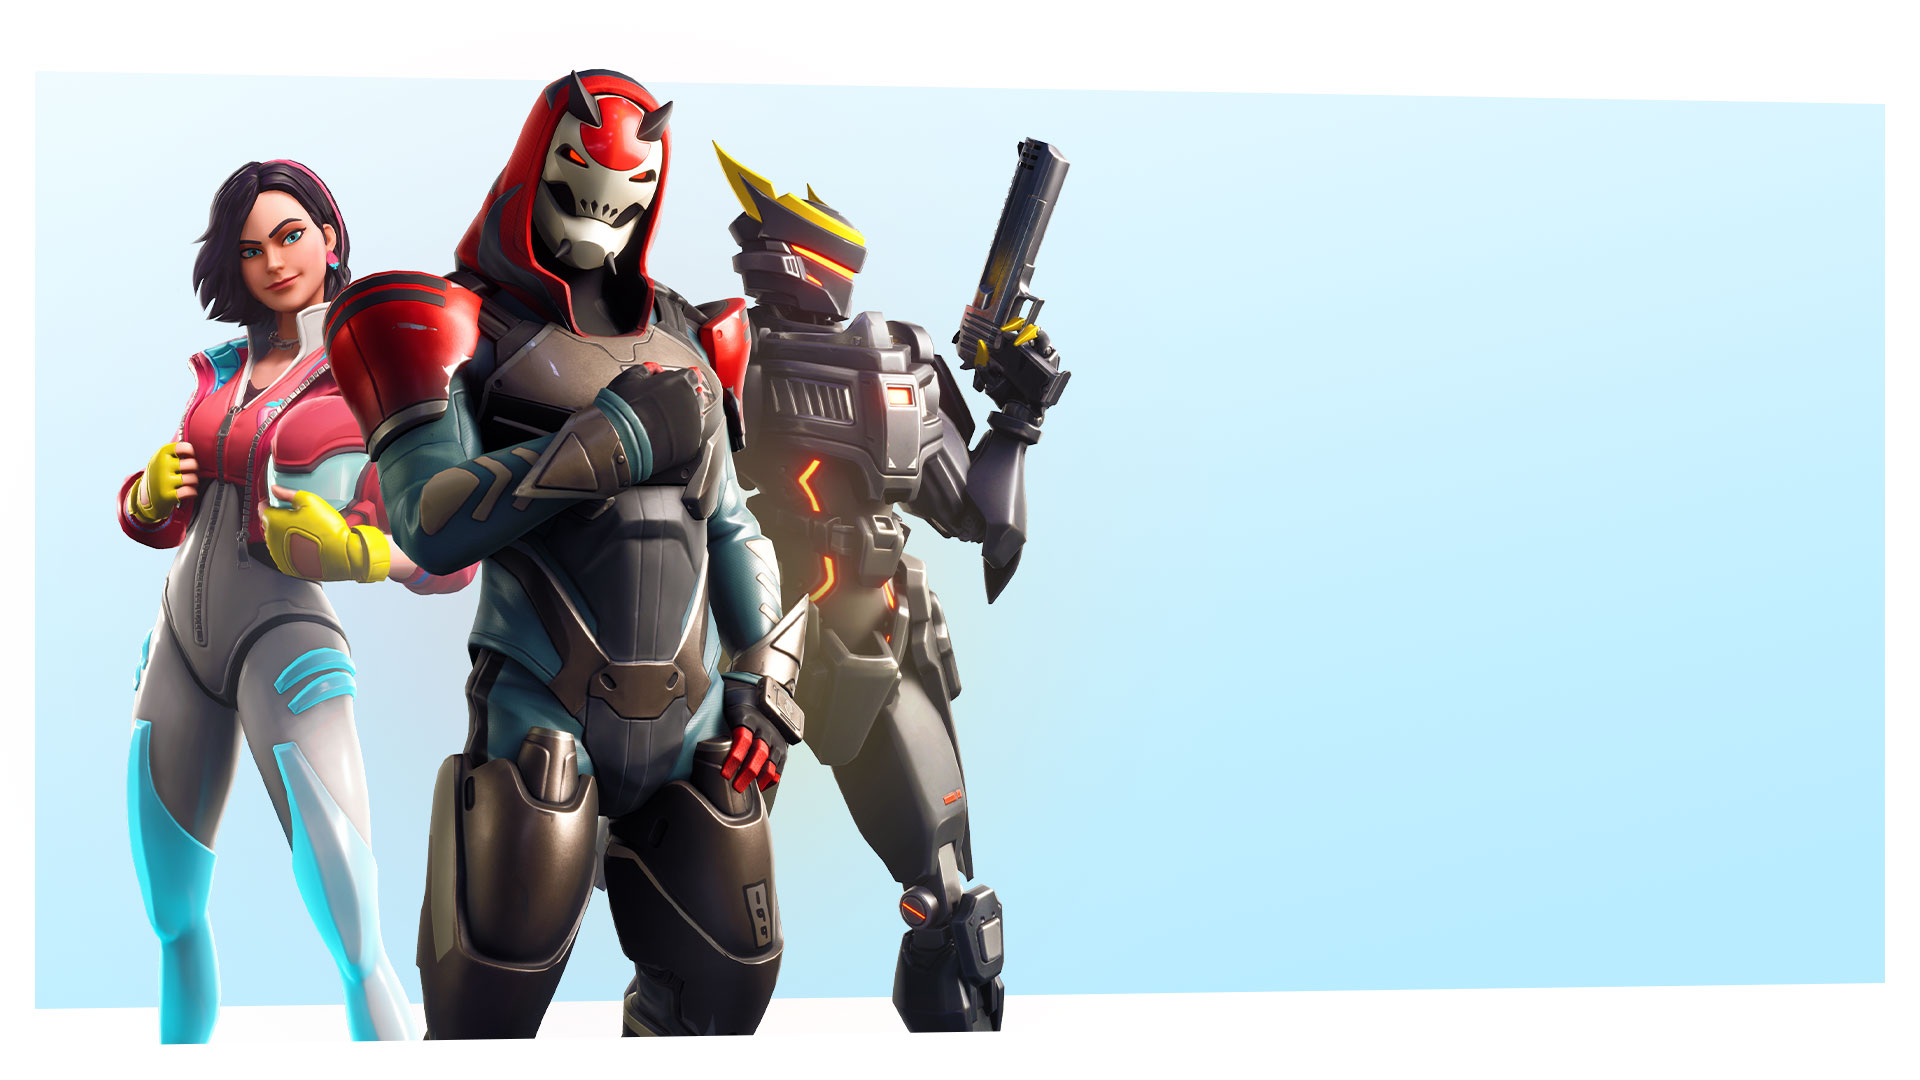 Fortnite Season 9 characters posing in formation